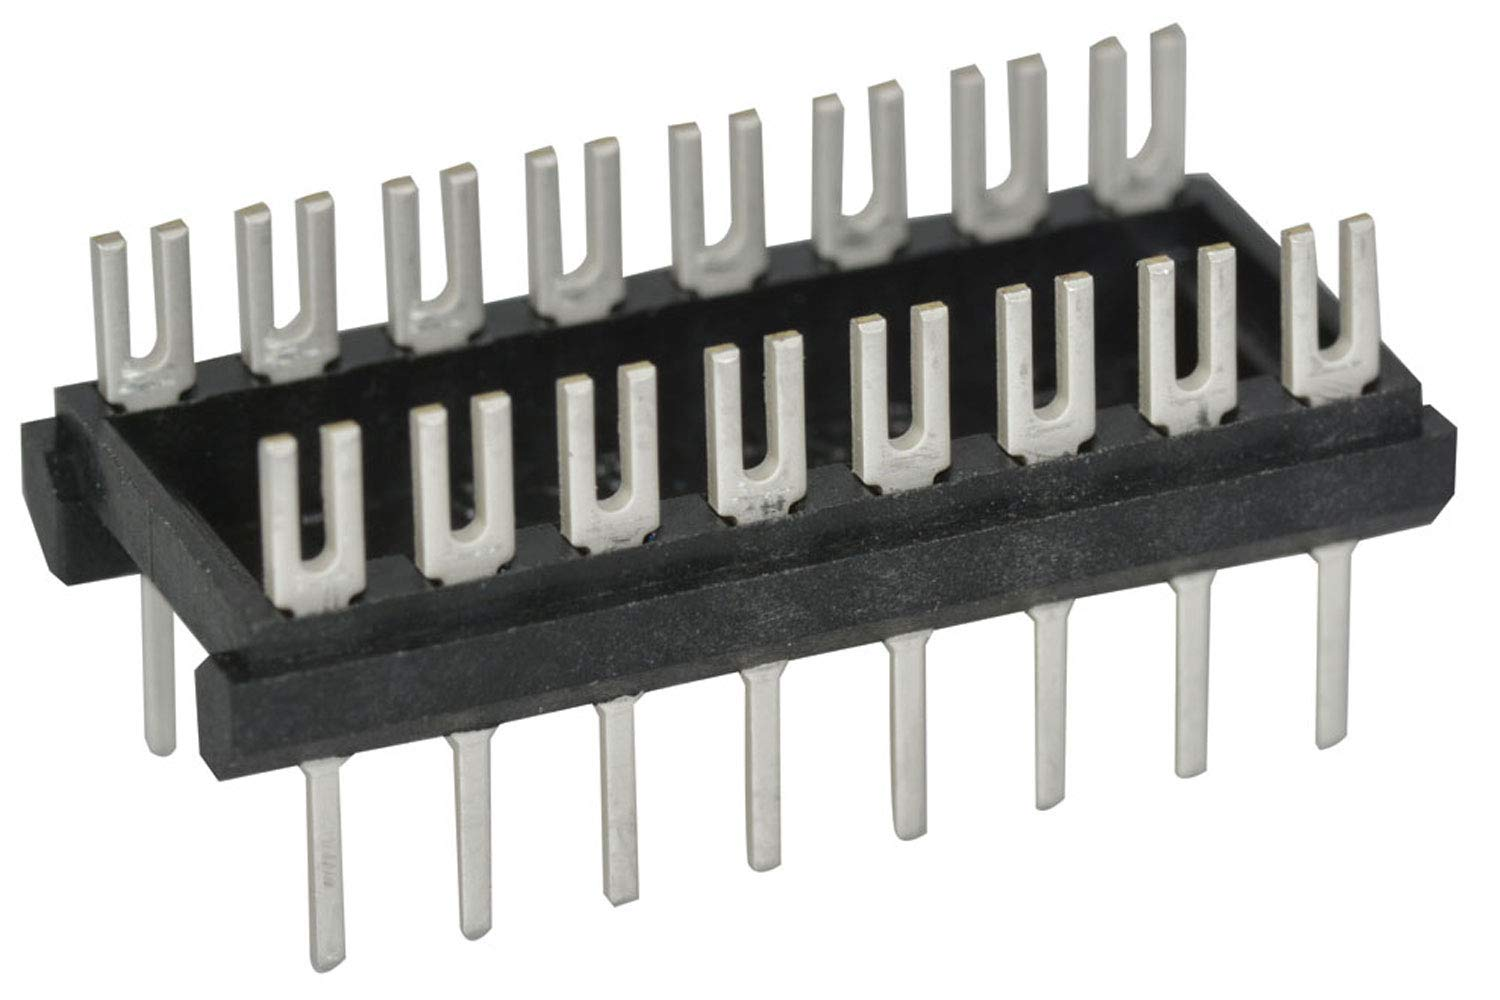 Aries Electronics DIP Adapter Header 16 Position 5.97 mm H x 21.59 mm L x 10.03 mm D Pack of 3 Straight Through Hole Aries 16-600-10 Connector Socket 2.54 mm Solder